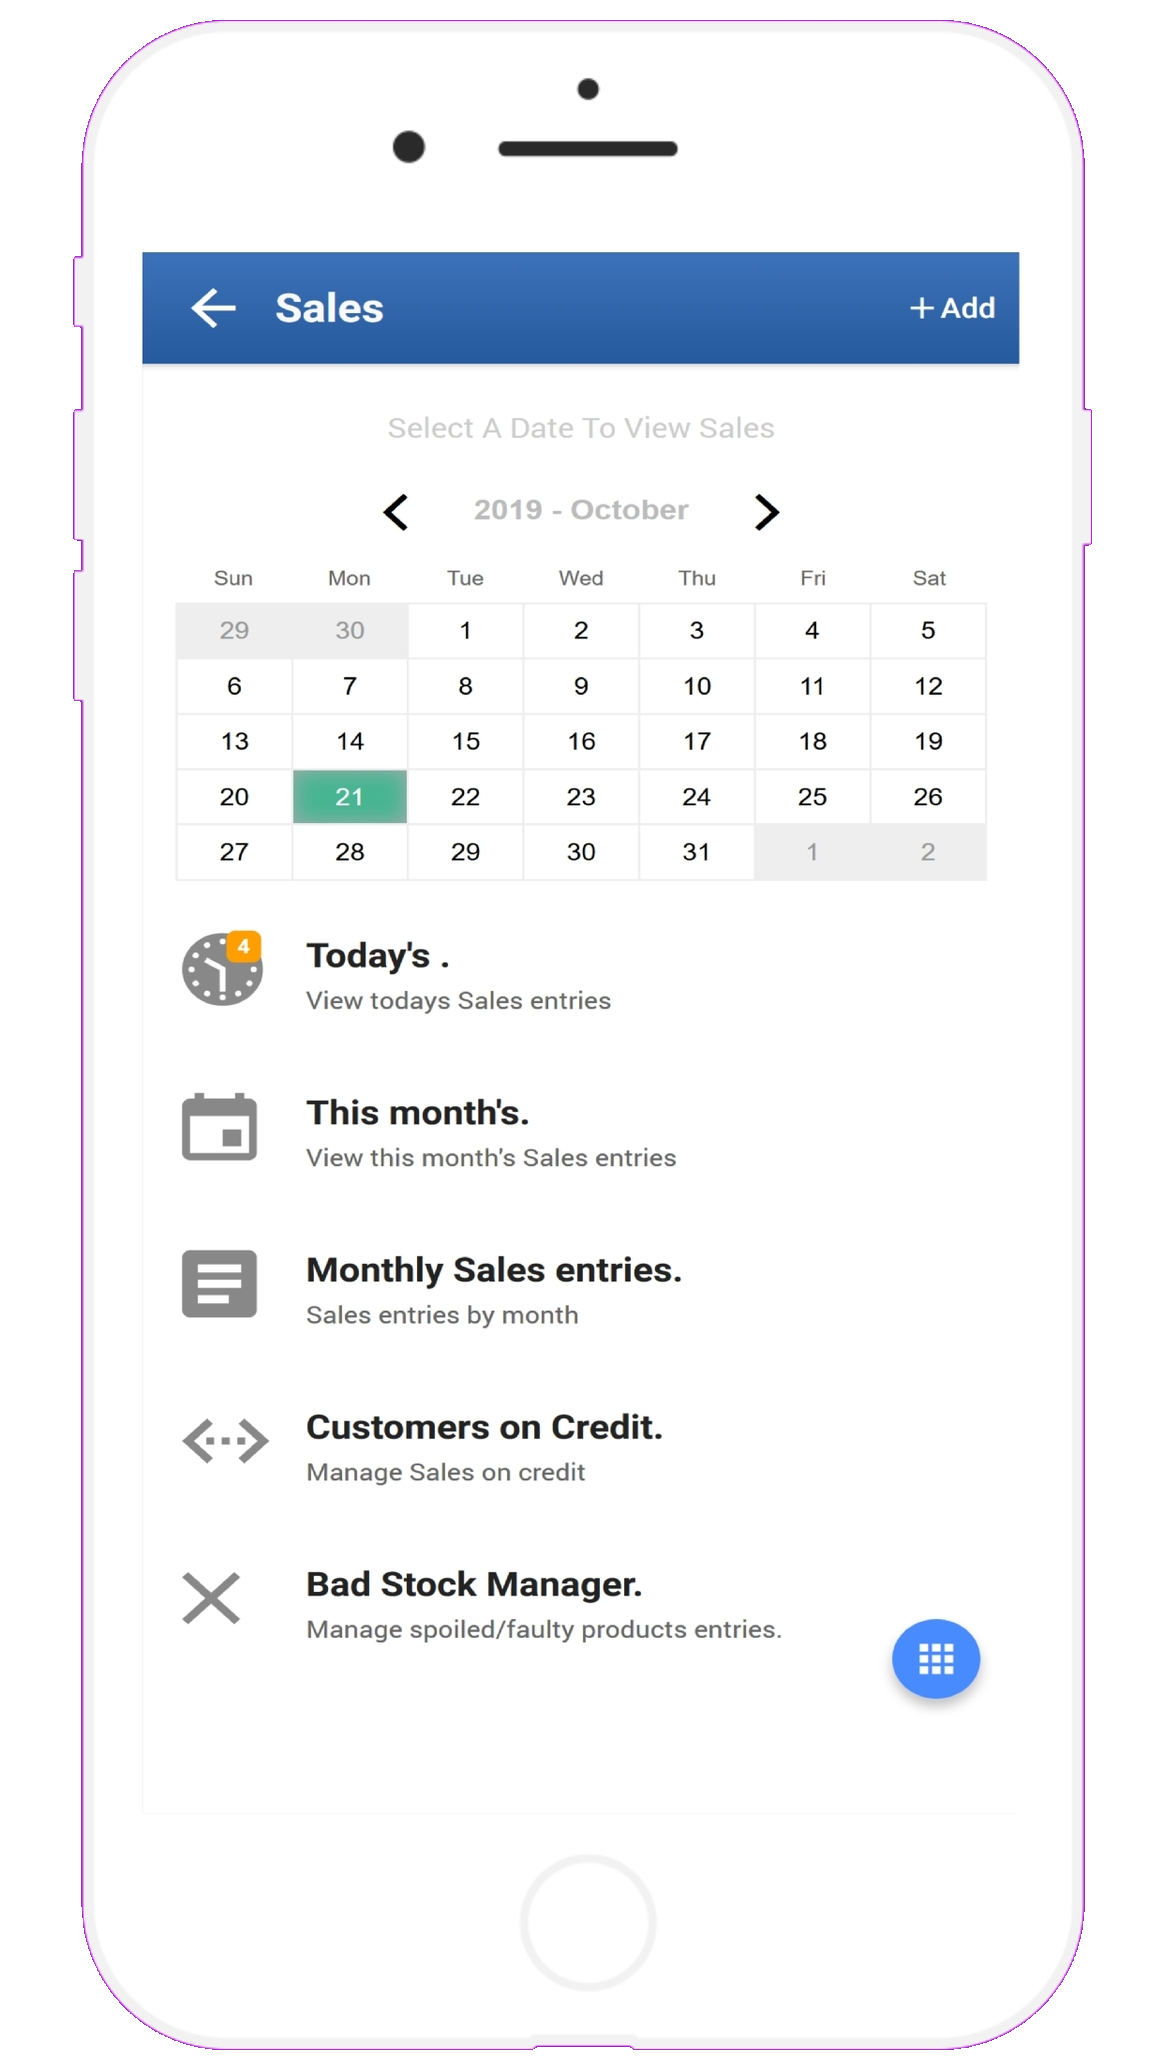 StockApp Sales Manager Dashbord